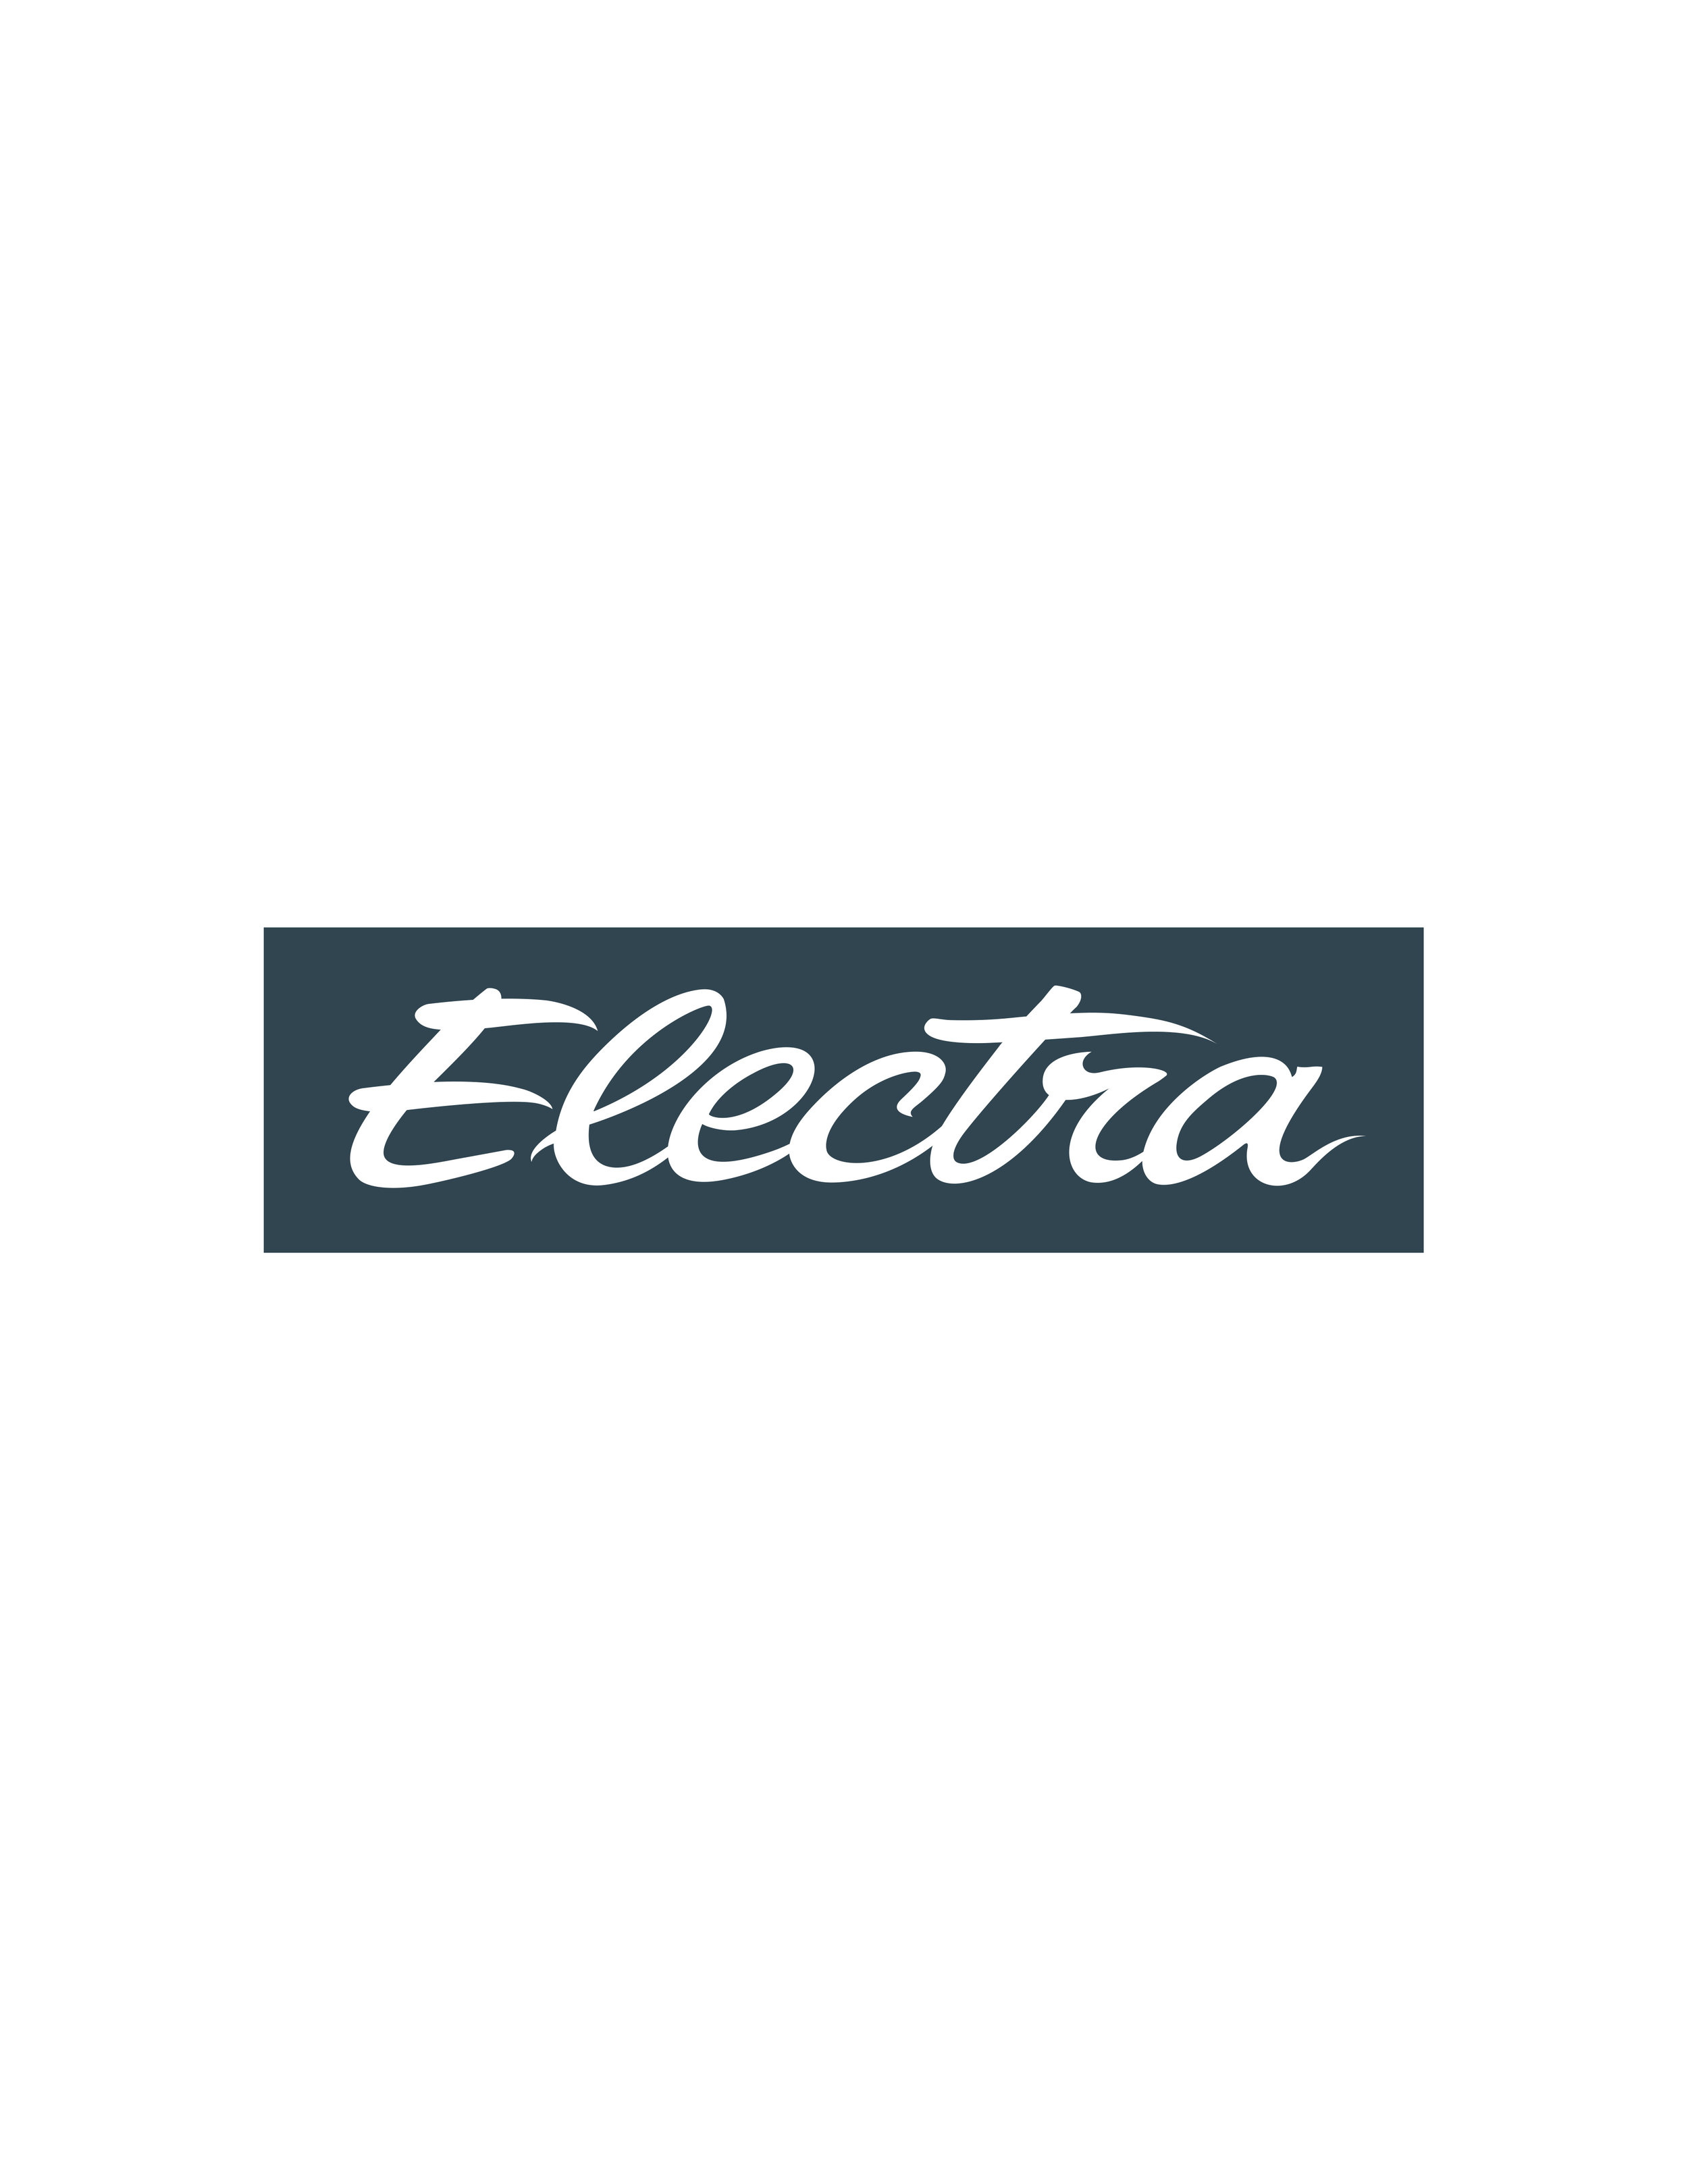 Electra_Blue_Logo_431C_mr.jpg